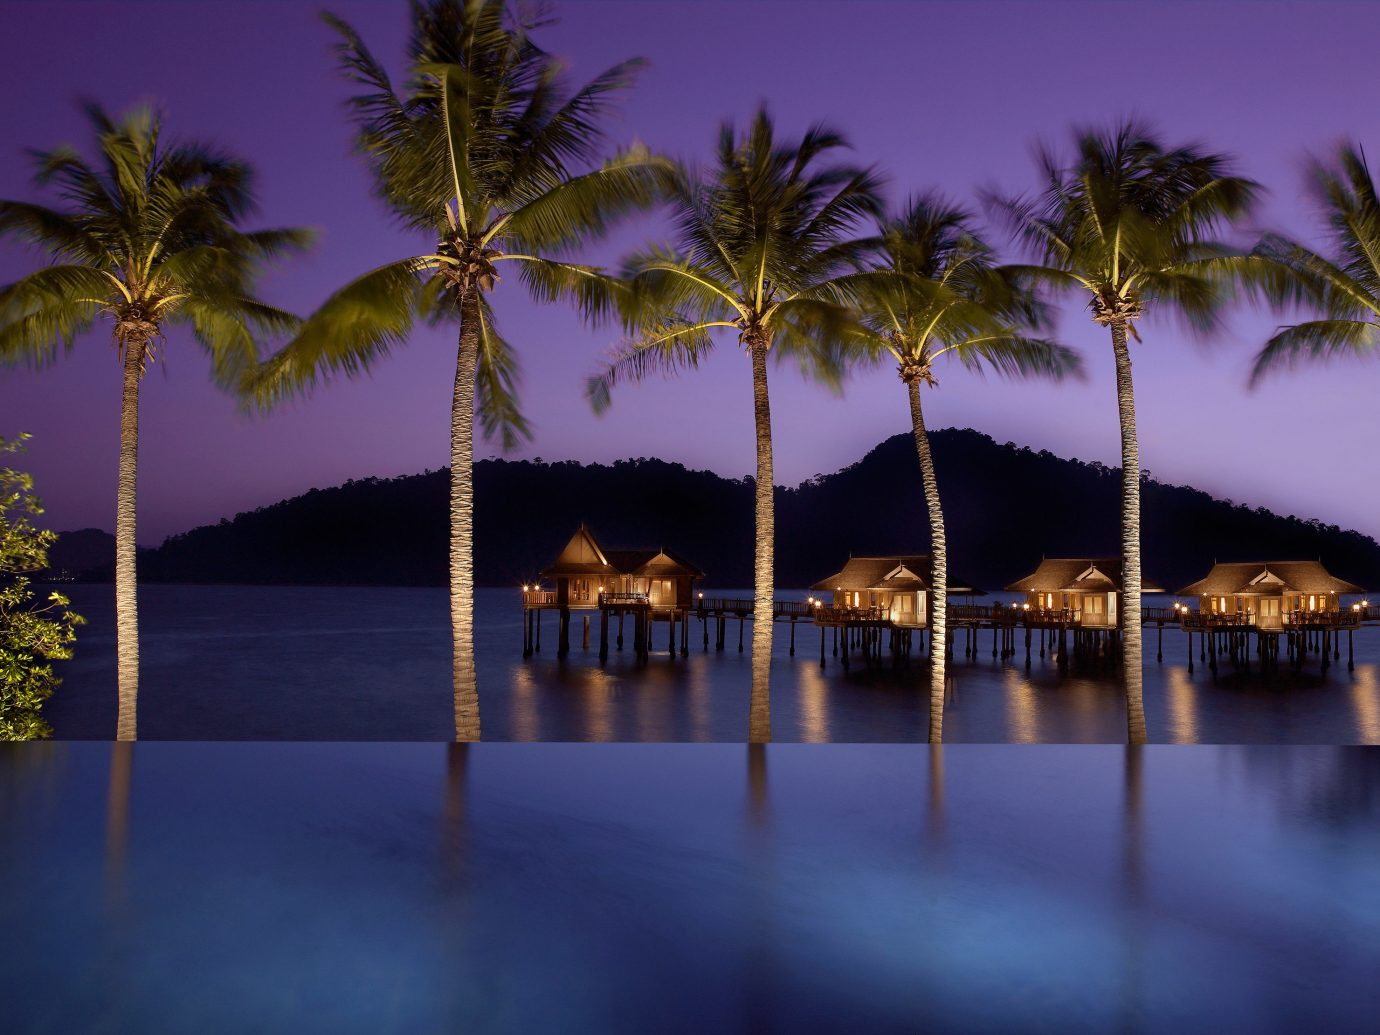 Hotels tree water palm outdoor reflection Beach night palm family arecales evening woody plant plant lighting dusk sunlight lined surrounded sandy shore